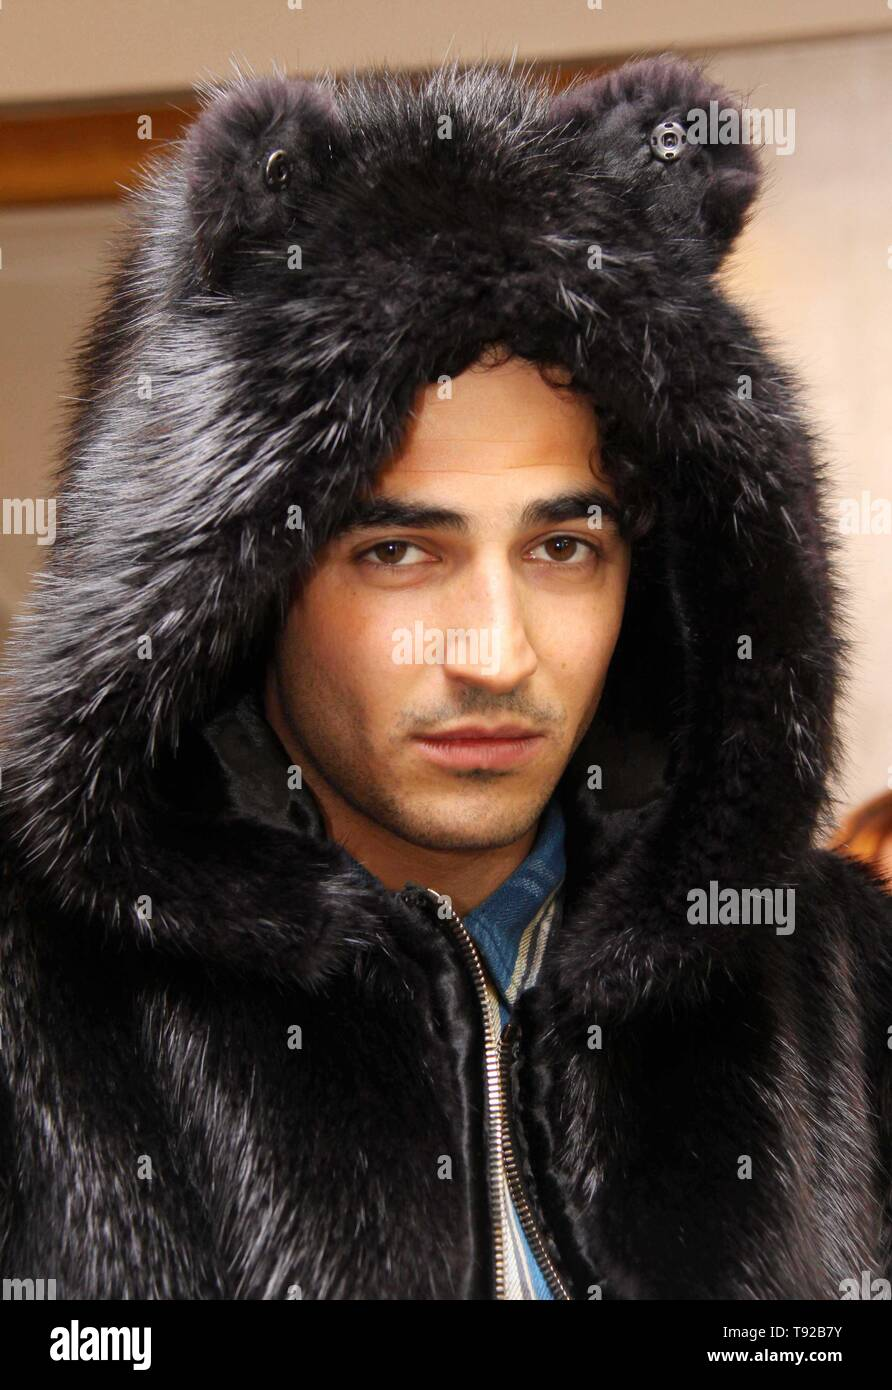 10-22-2008 Zac Posen previews his Fall/Winter 2008 fur collection at the Maximillian Fur Salon at Bloomingdale's flagship store on 59 Street. Photo by Adam Scull-PHOTOlink.net Stock Photo